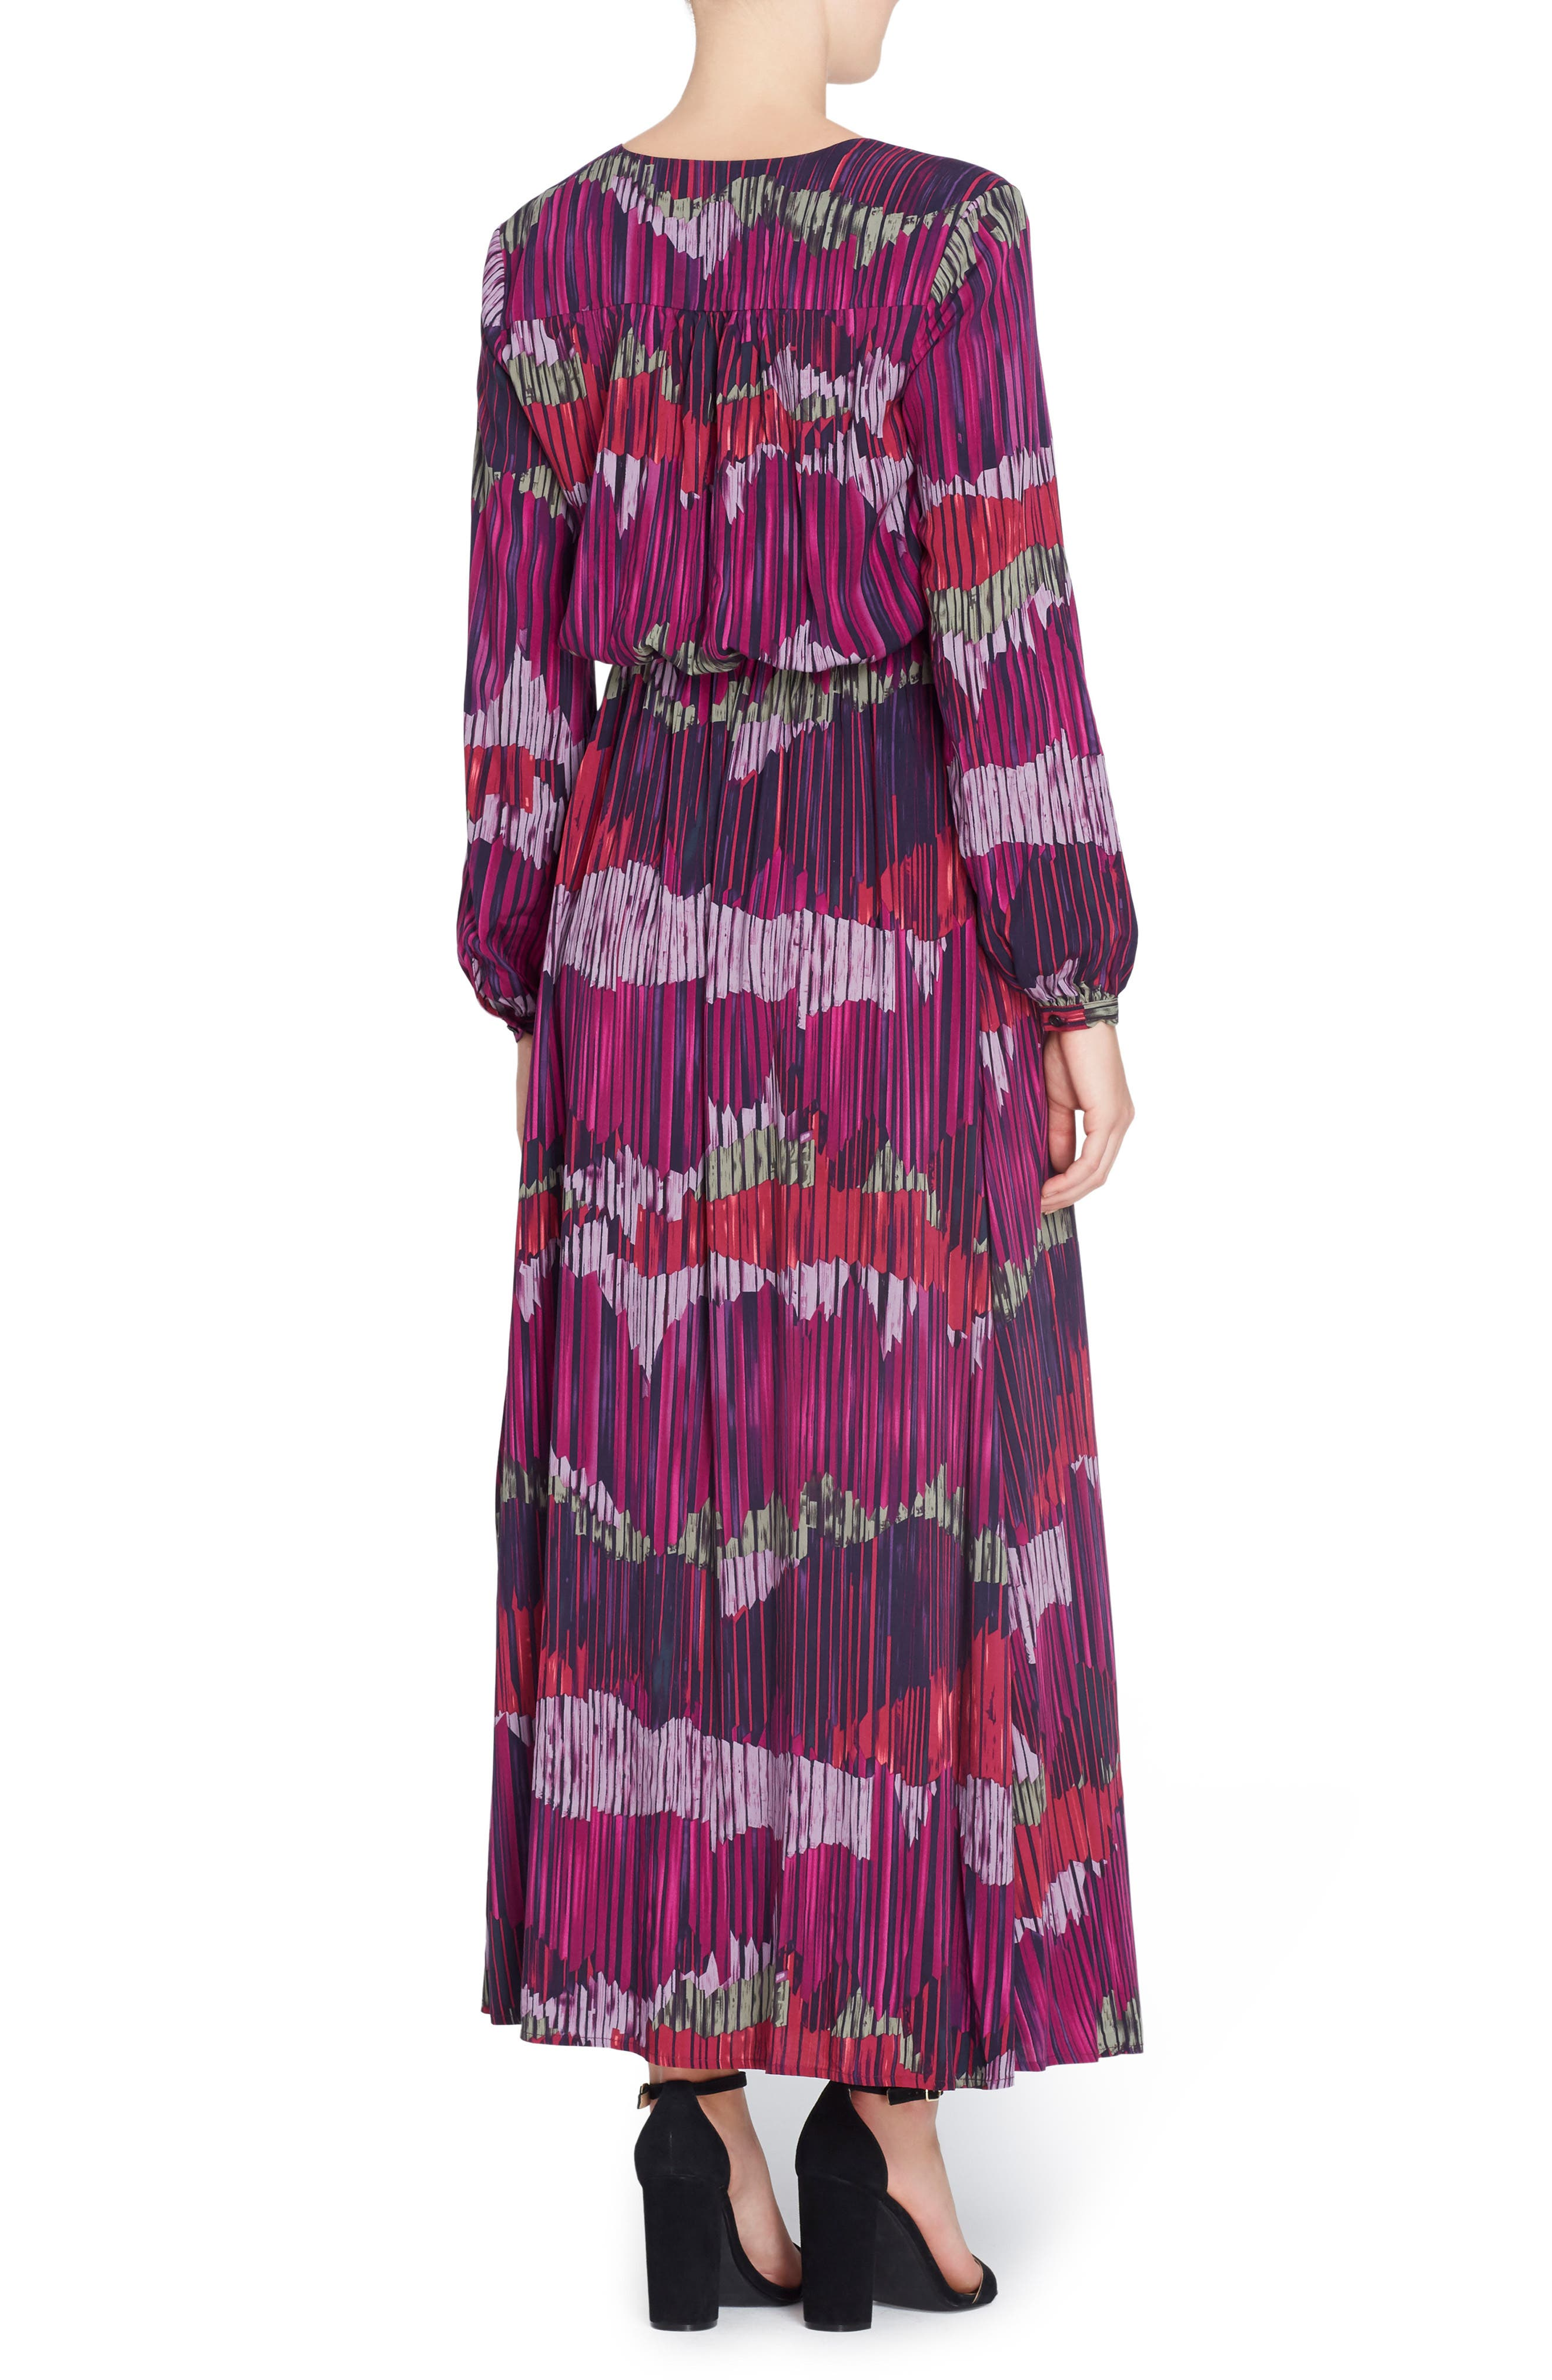 June Print Maxi Dress,                             Alternate thumbnail 2, color,                             591